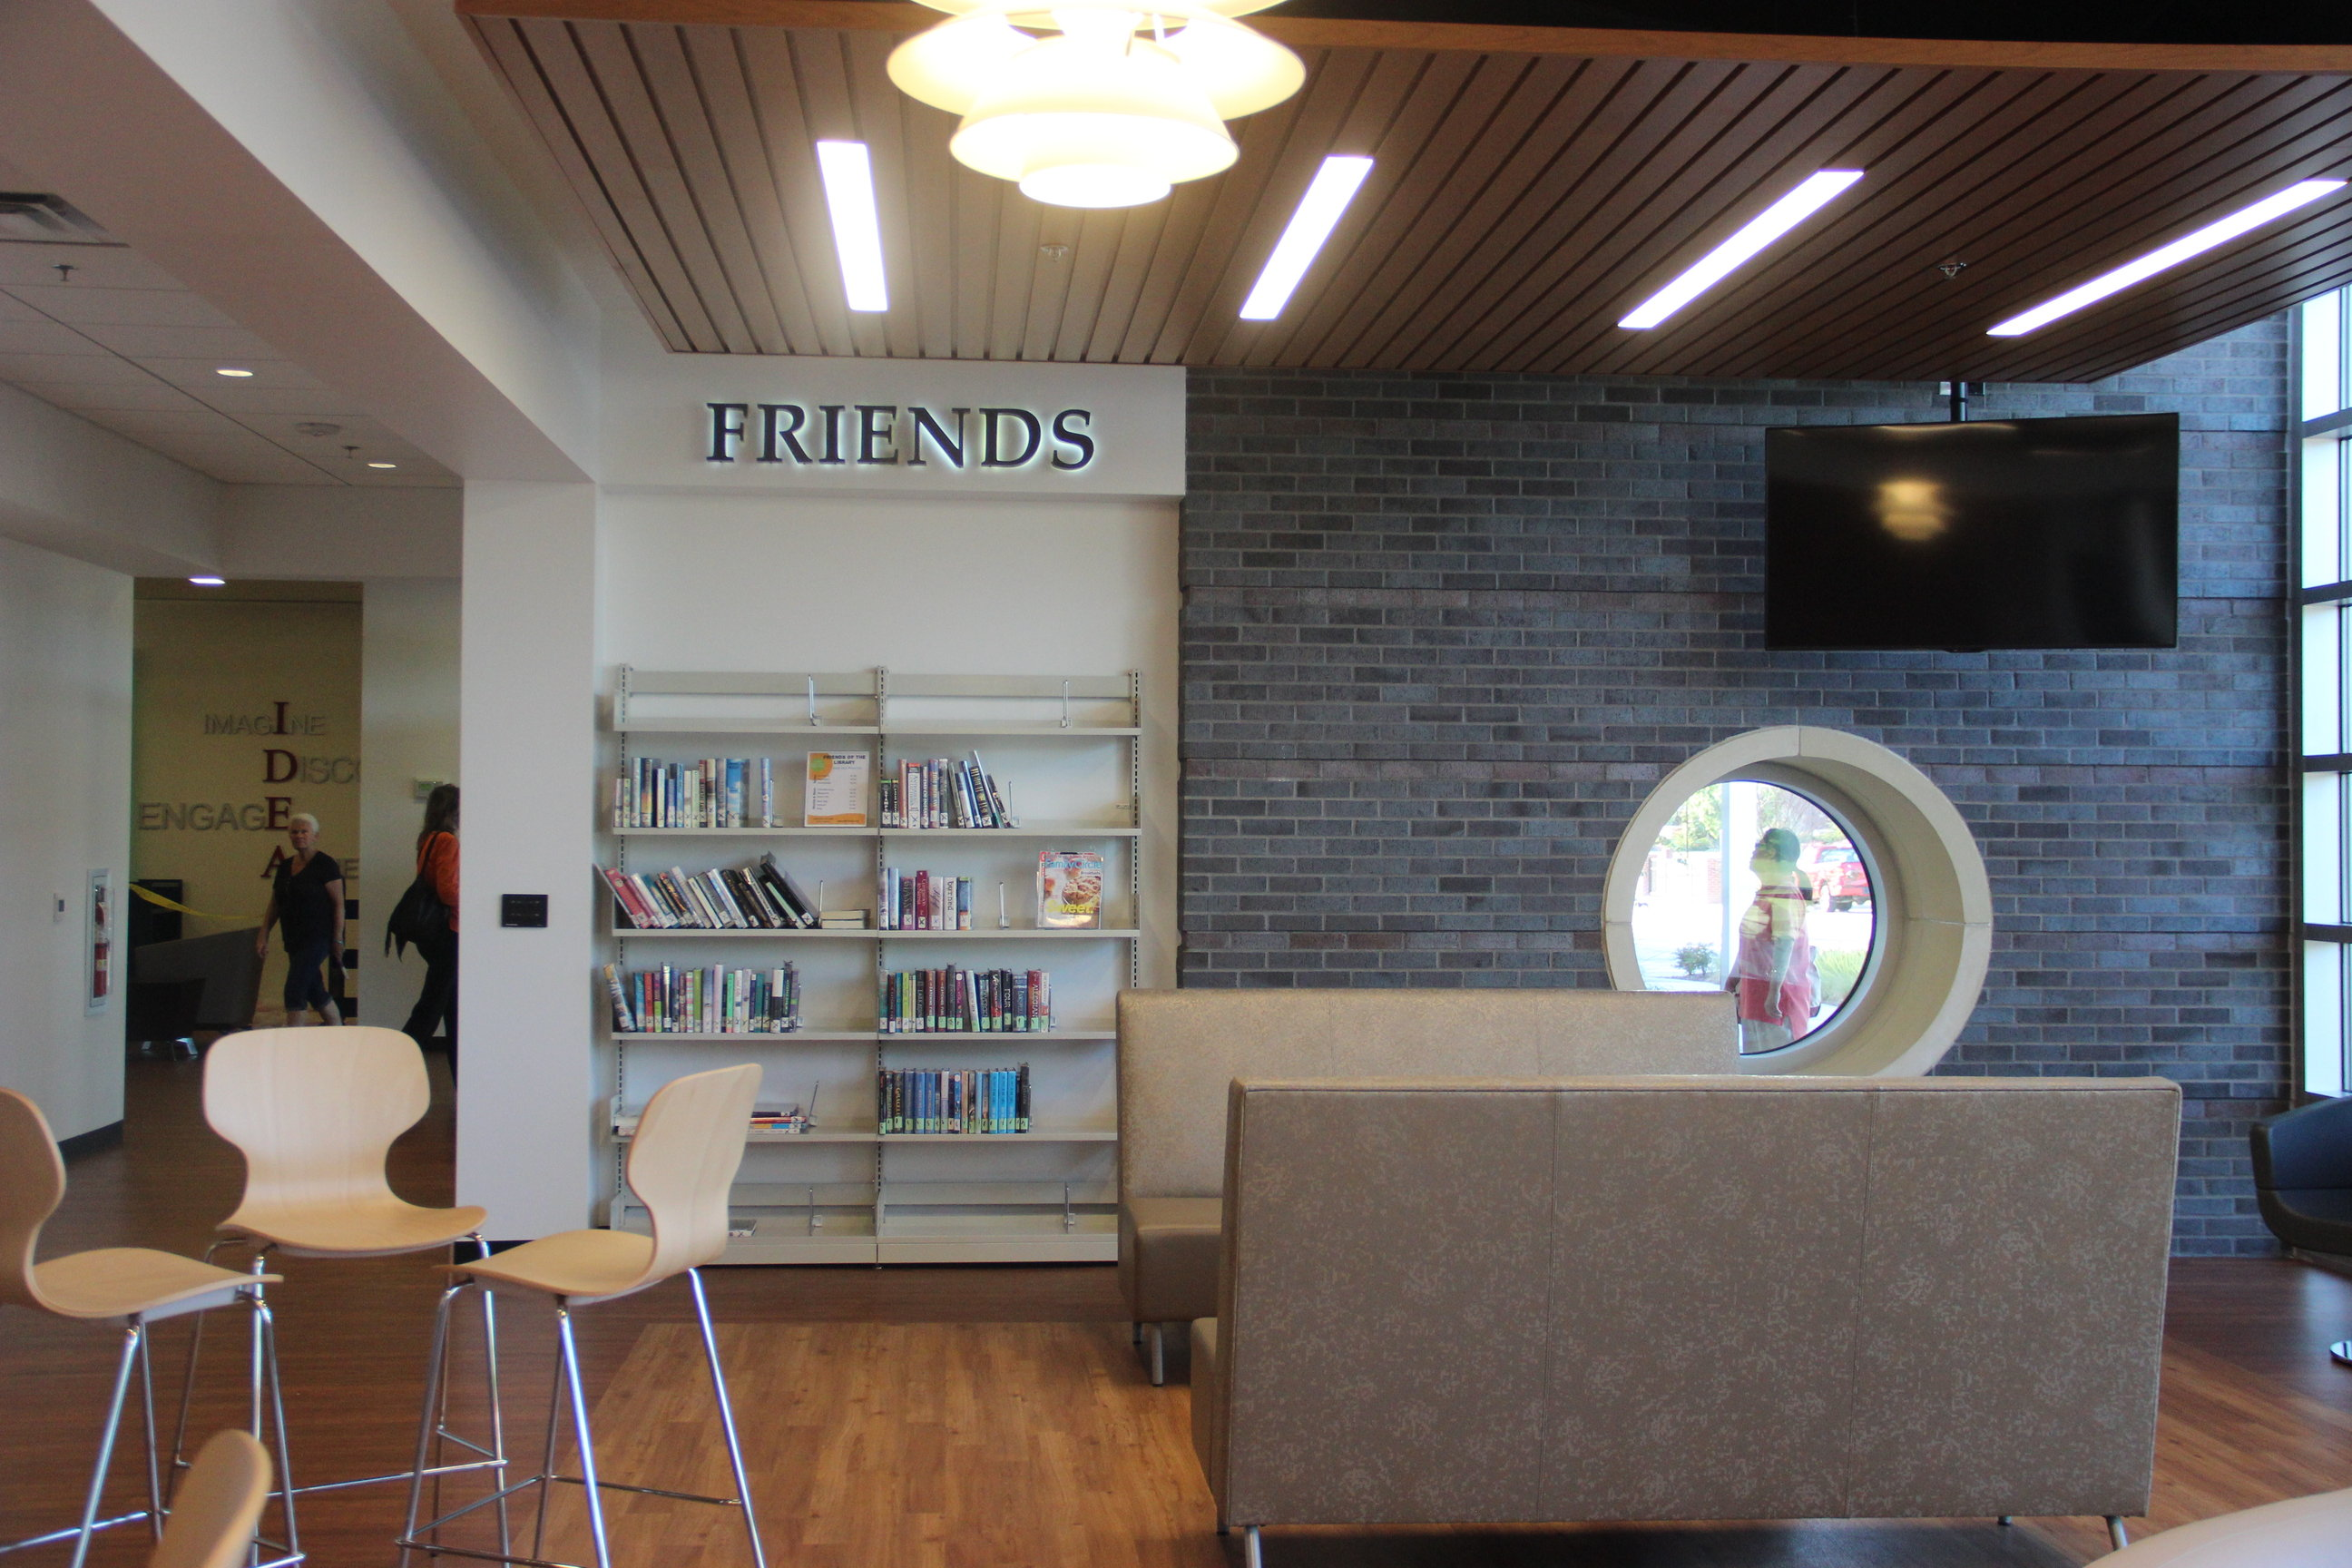 One+of+the+many+new+spaces+in+the+William+T.+Cozby+public+library+is+designated+for+teens+to+have+a+place+to+hang+out+and+have+fun.+The+newly+renovated+Cozby+Library+is+now+open+to+the+public%2C+but+will+have+its+official+opening+ceremony+on+Nov.+20.%0A